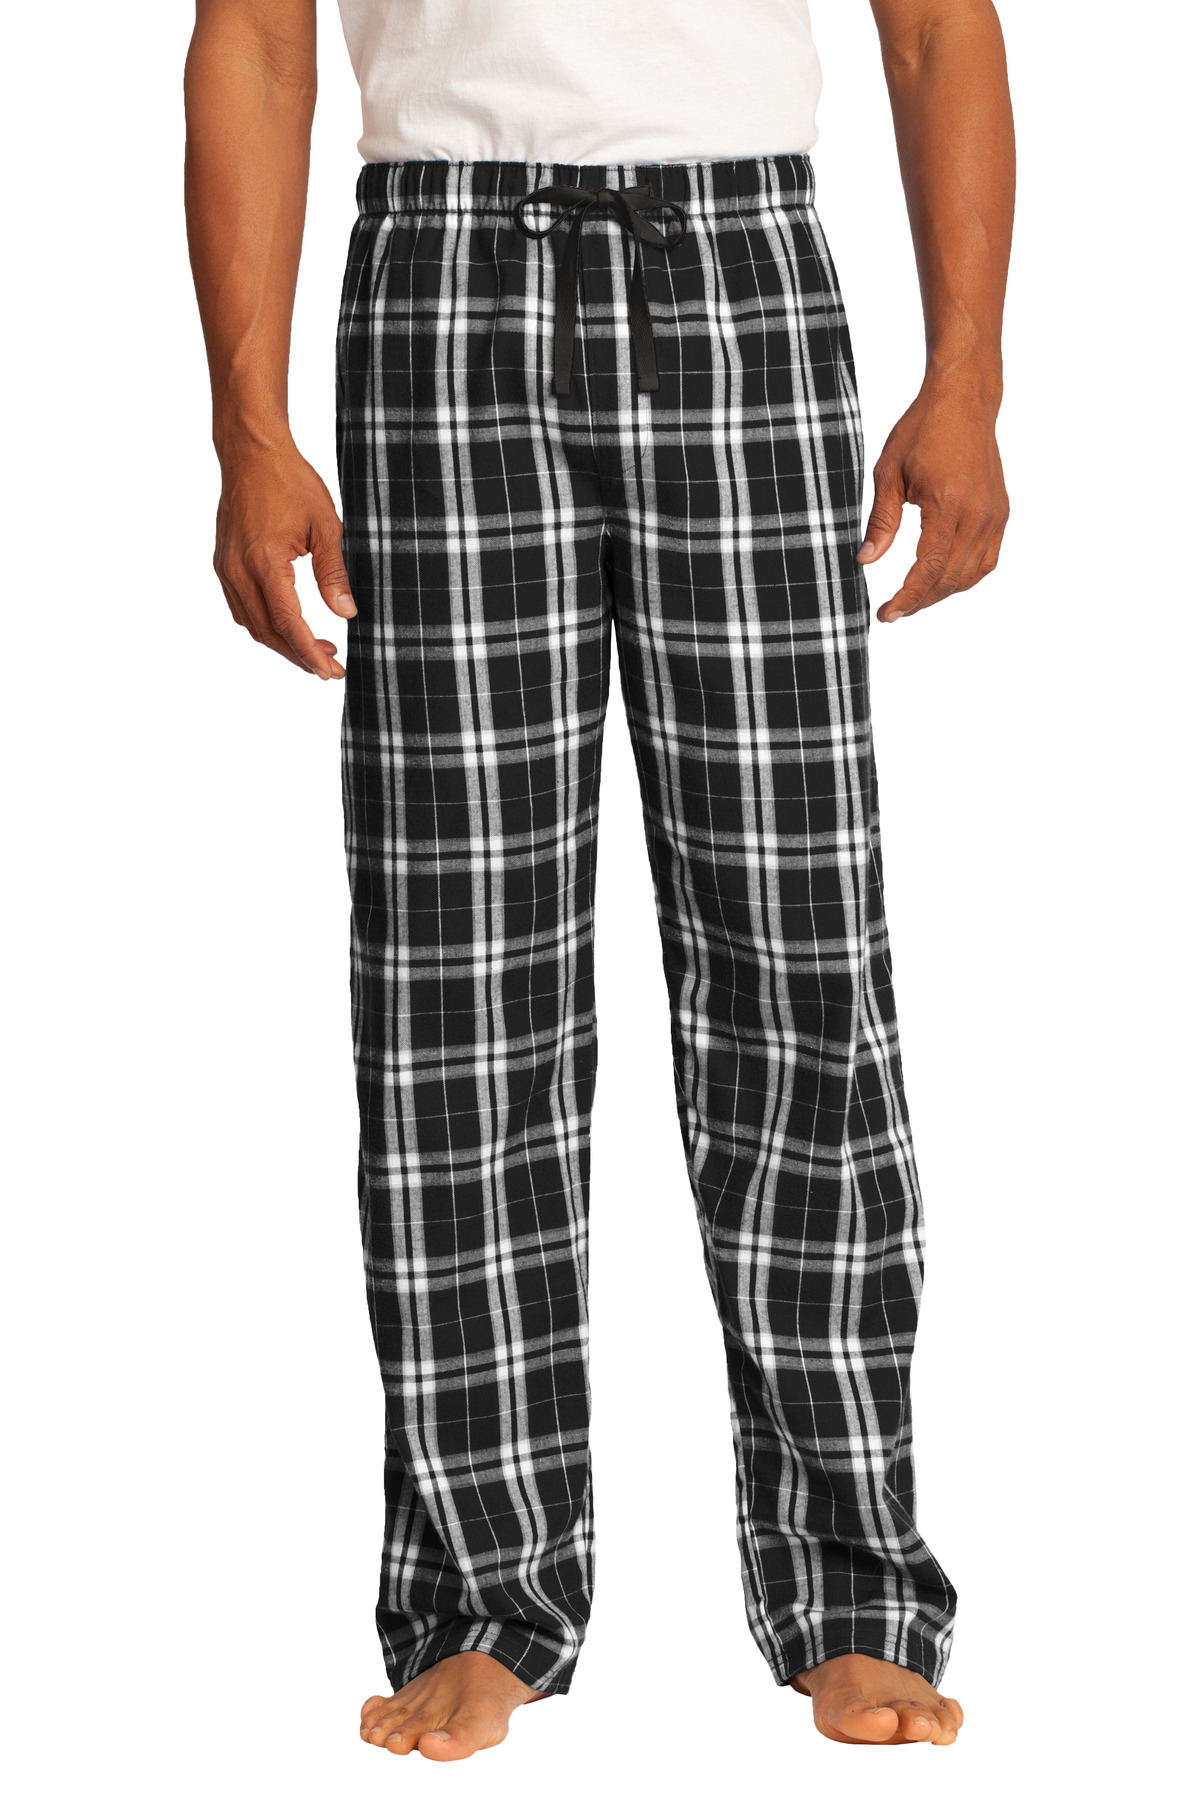 District ®  Flannel Plaid Pant. DT1800 - Black